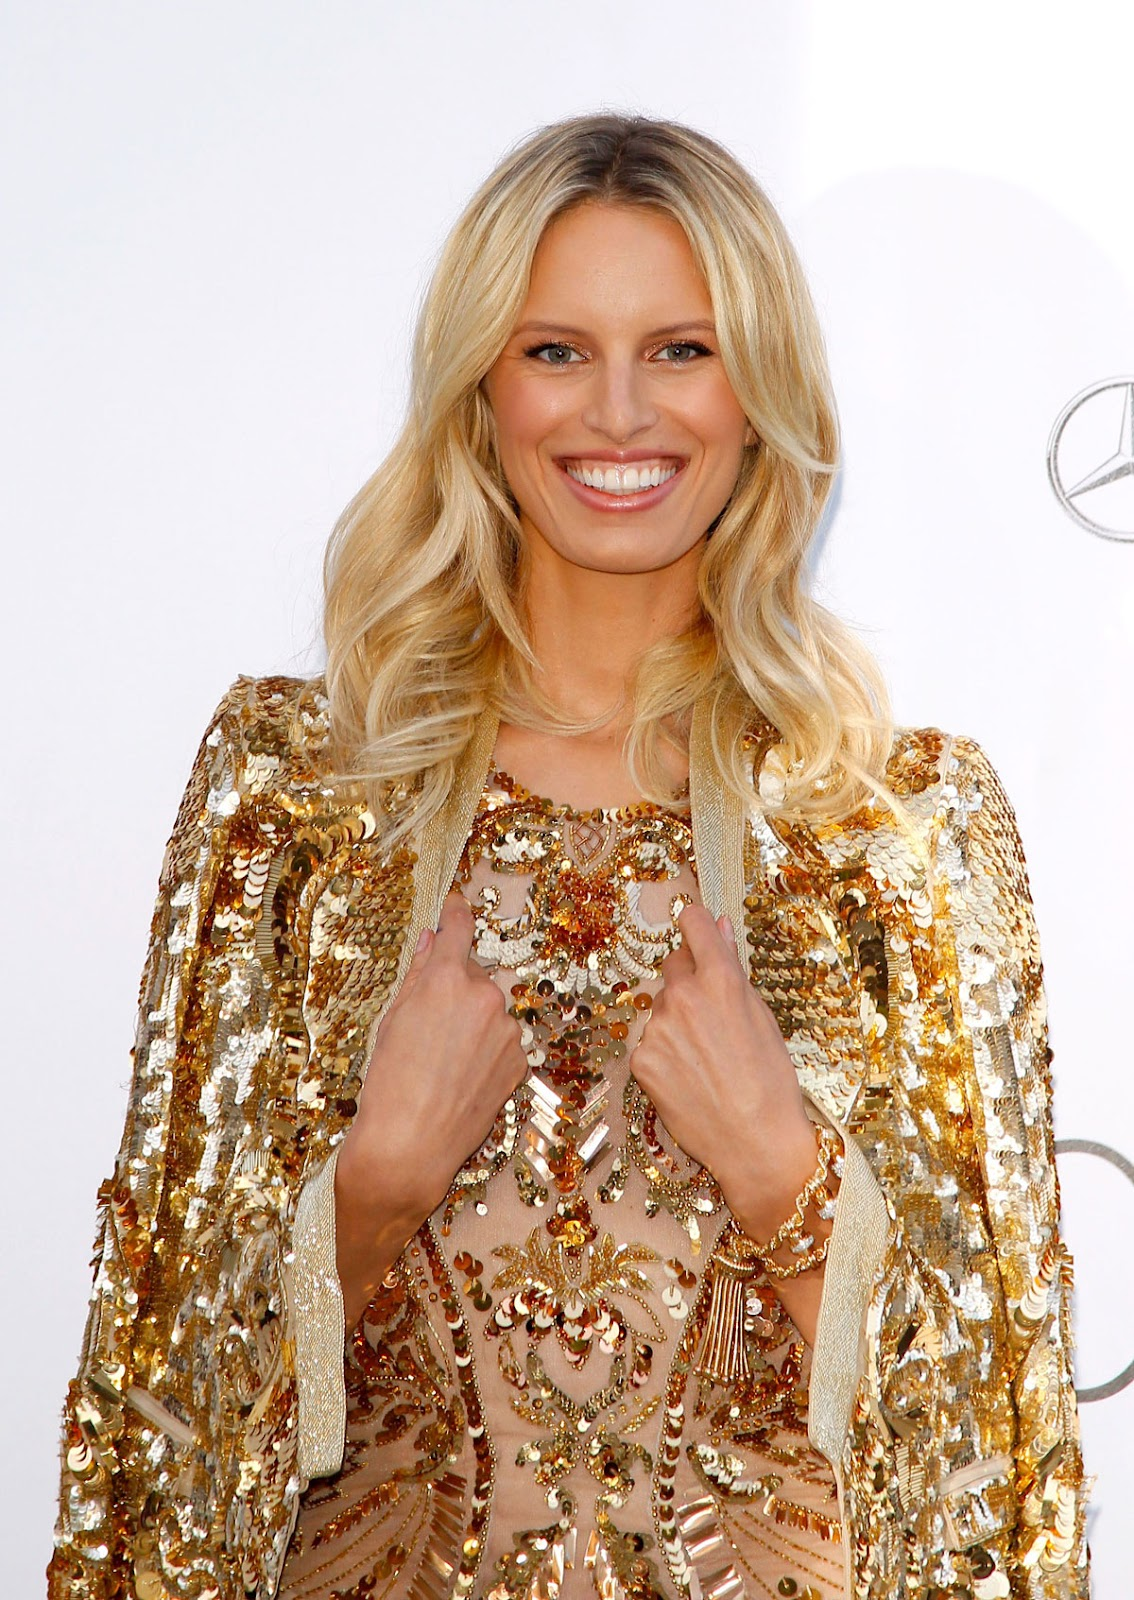 http://3.bp.blogspot.com/-JA_QvxXNTjw/T8NSBFiyiyI/AAAAAAAACc8/L3xio8pKWeE/s1600/KAROLINA-KURKOVA-at-amfAR-Cinema-Against-AIDS-Benefit-at-Cannes-Film-Festival-1.jpg